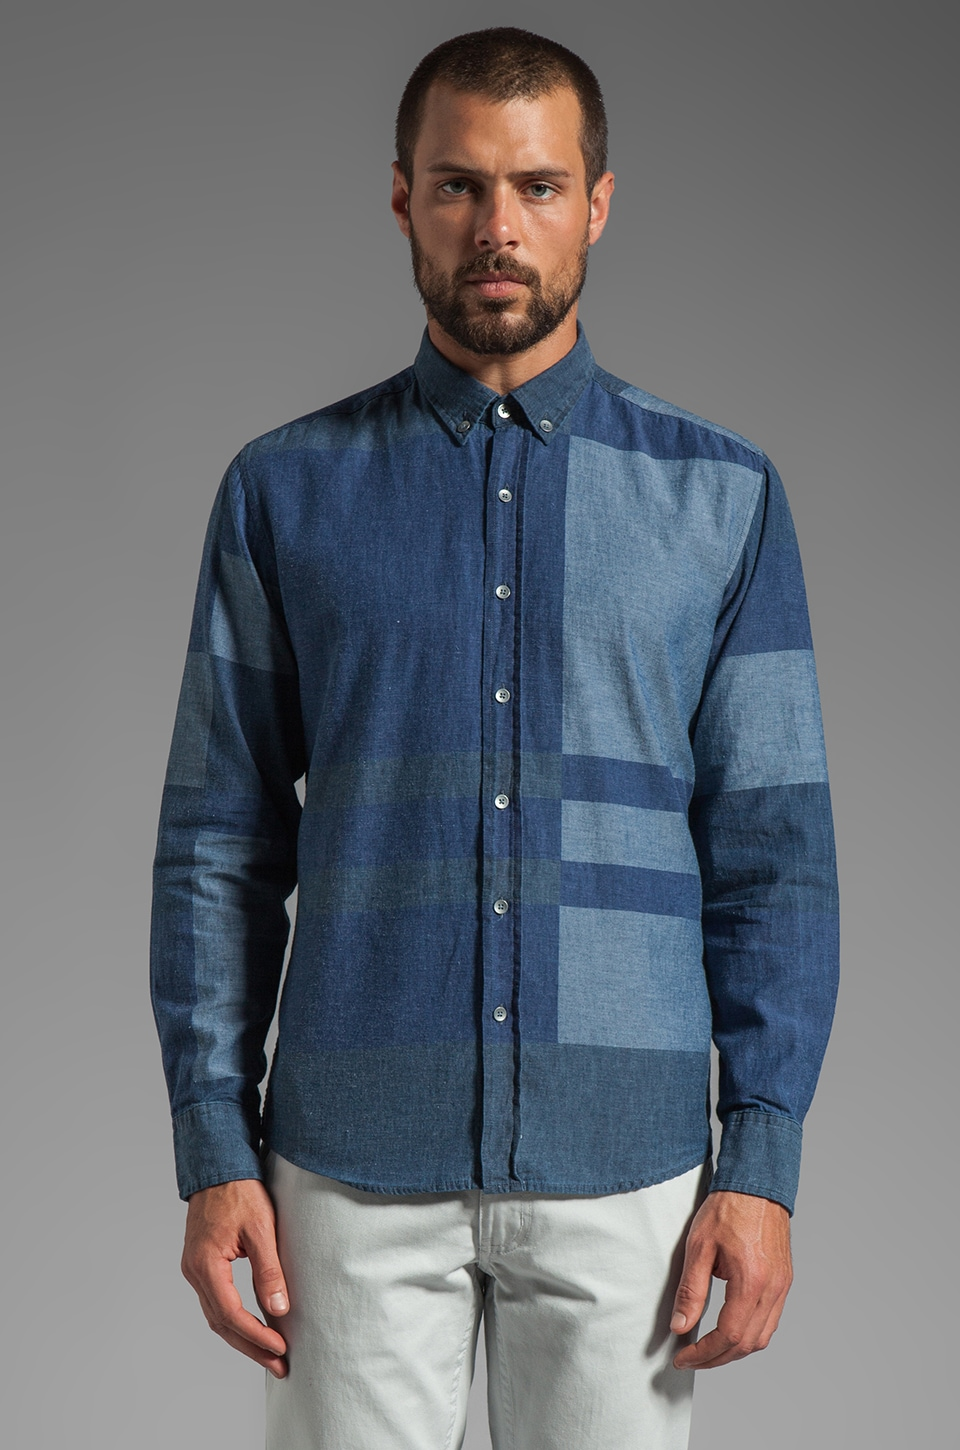 WRK Portland Long Sleeve Shirt in Indigo Plaid